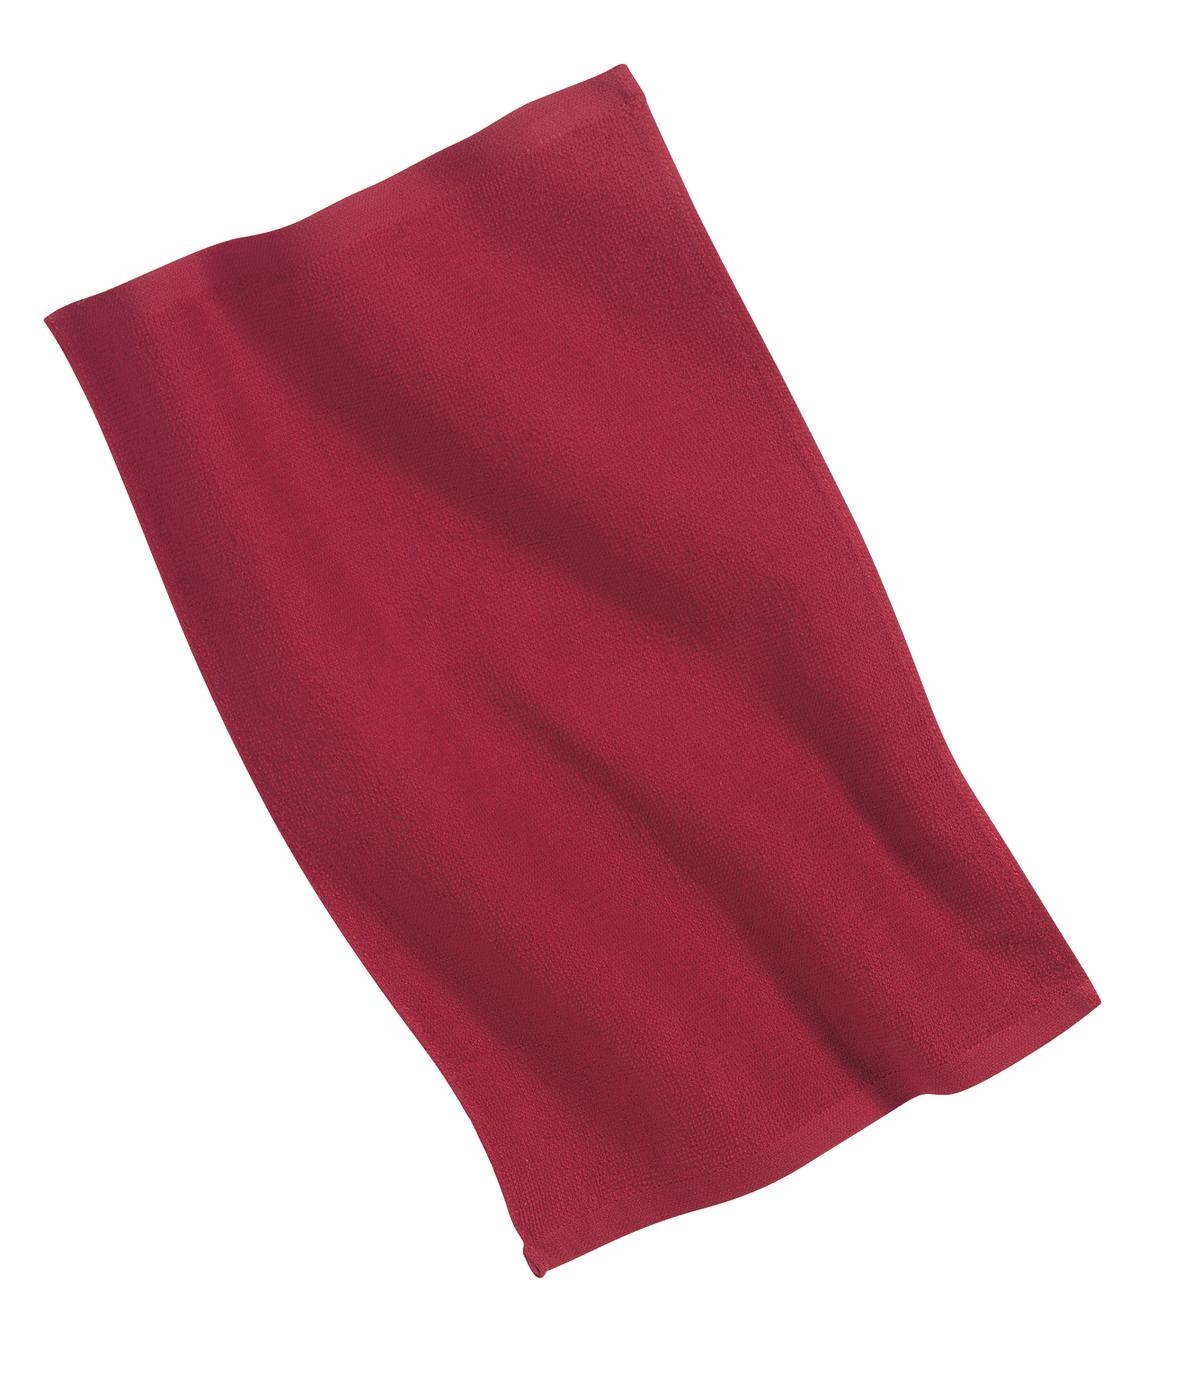 Port Authority ®  - Rally Towel.  PT38 - Red